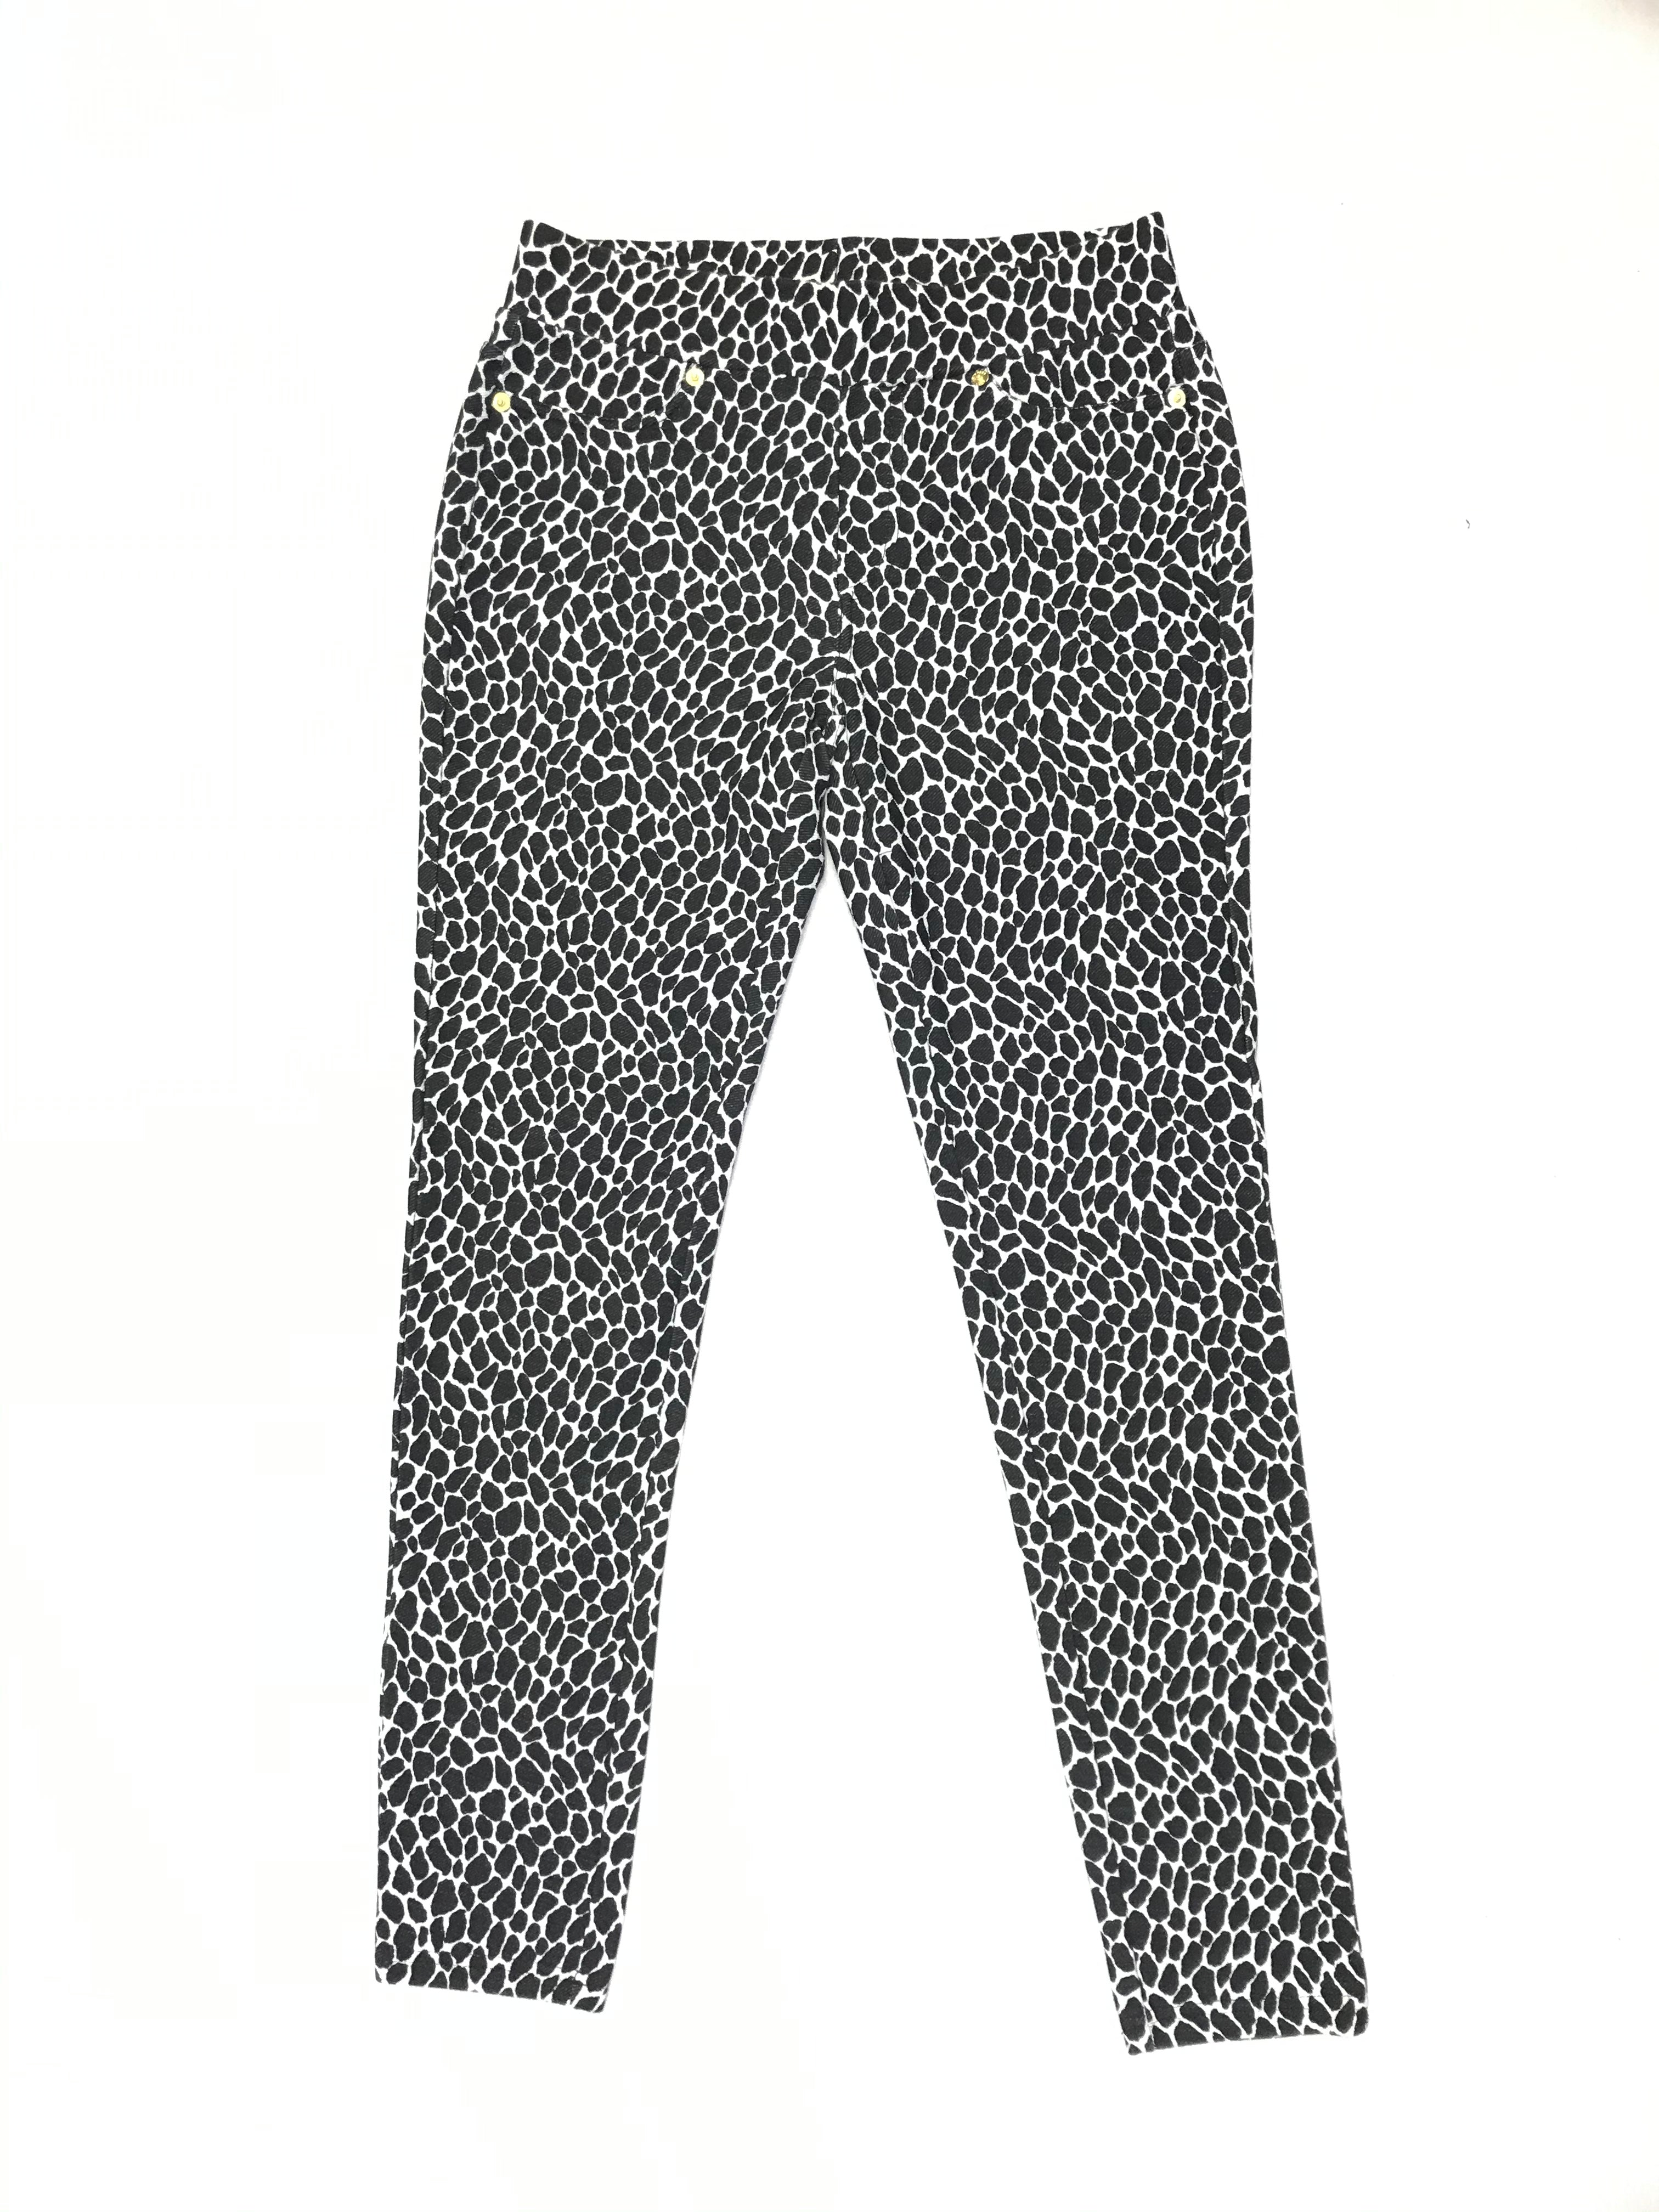 Primary Photo - BRAND: MICHAEL BY MICHAEL KORS <BR>STYLE: PANTS <BR>COLOR: ANIMAL PRINT <BR>SIZE: S <BR>OTHER INFO: WHITE/BLACK <BR>SKU: 223-22318-106041